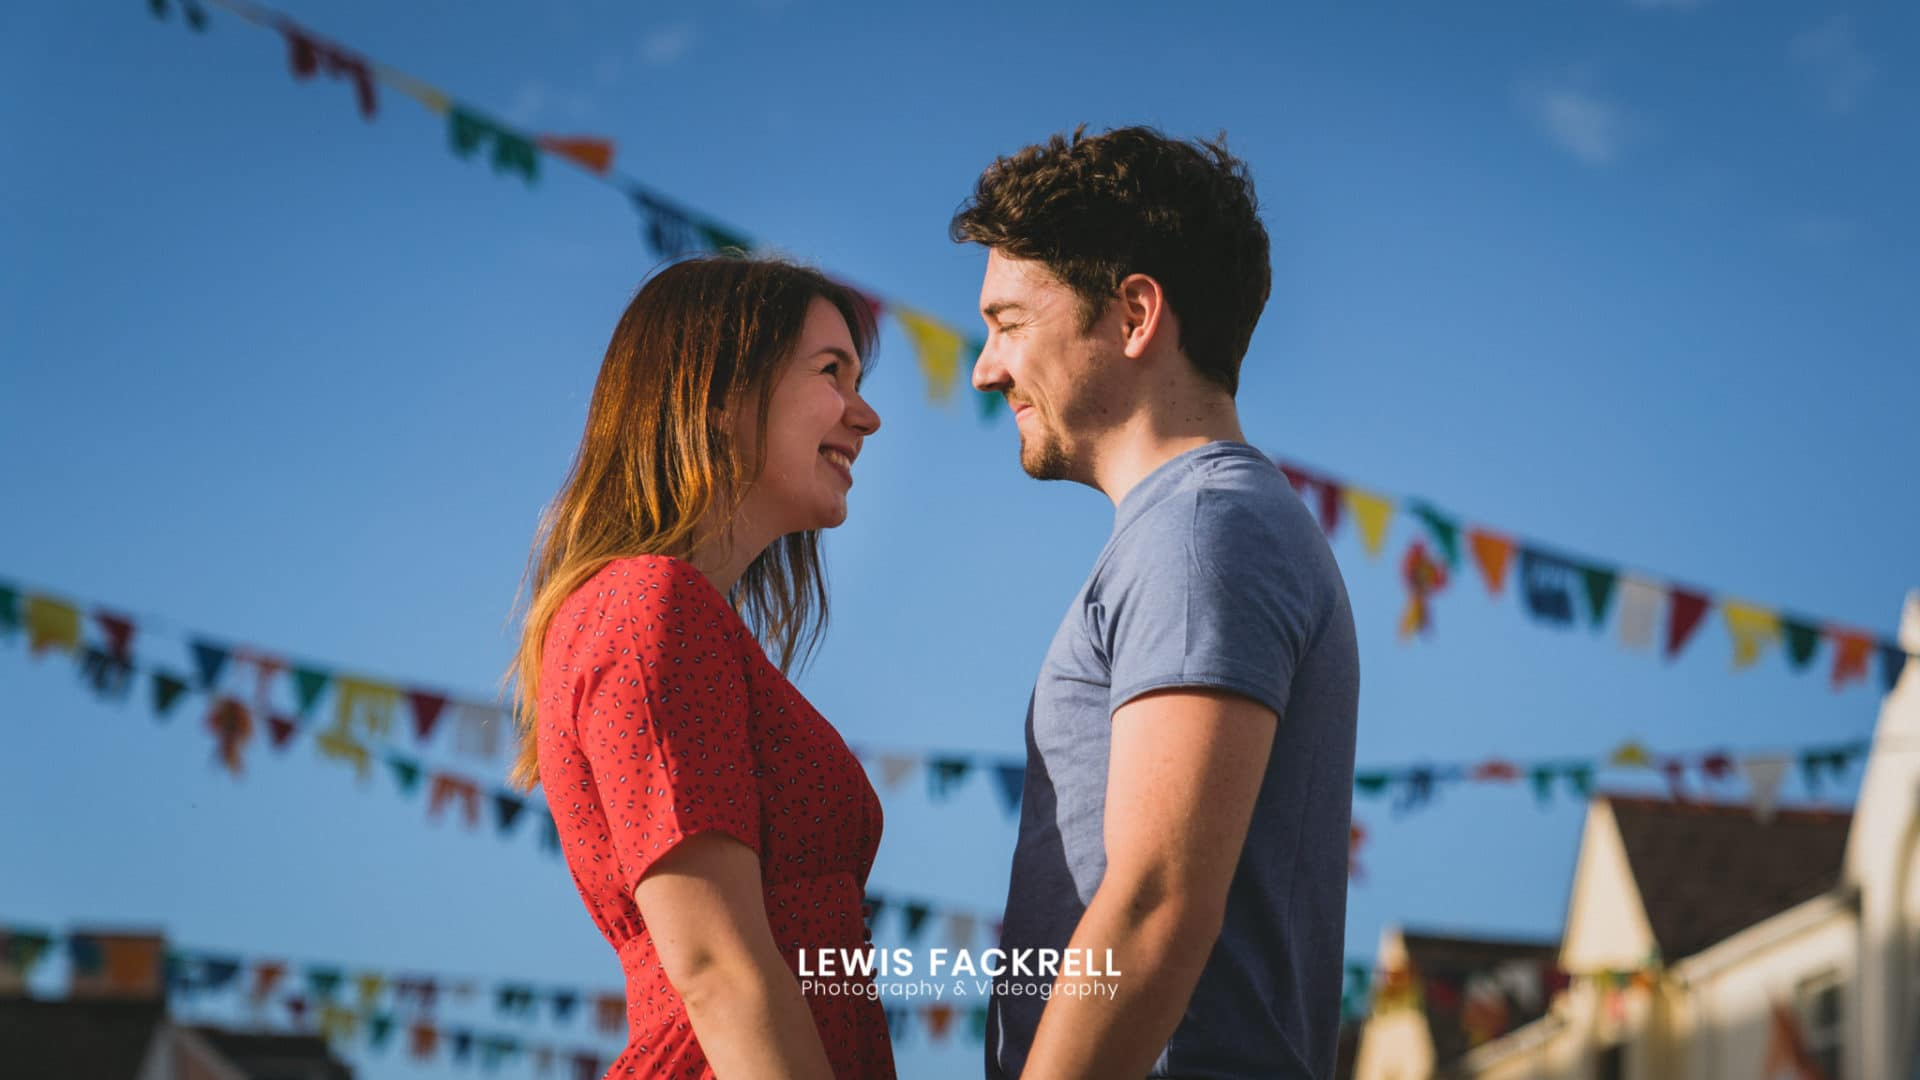 Saundersfoot pre-wedding photography with couple holding each other under the bunting on the high street